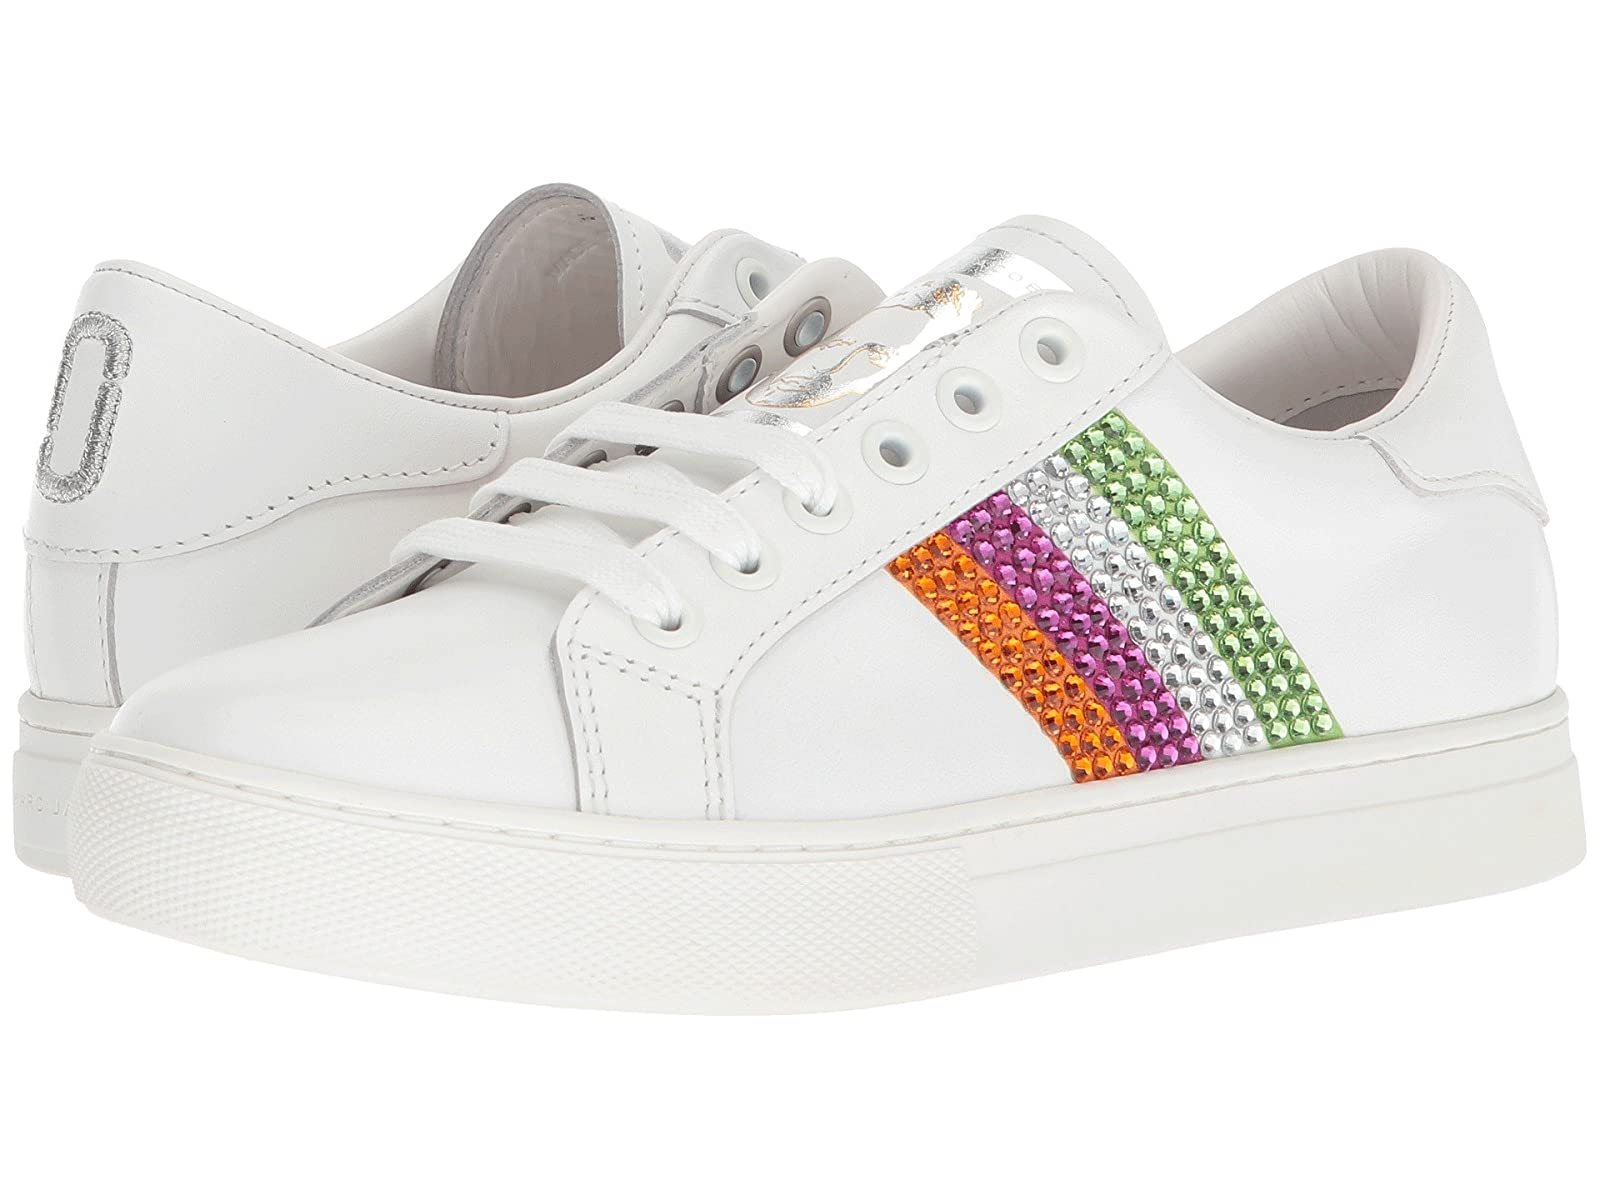 Marc Jacobs Empire Strass Low Top SneakerCheap and distinctive eye-catching shoes